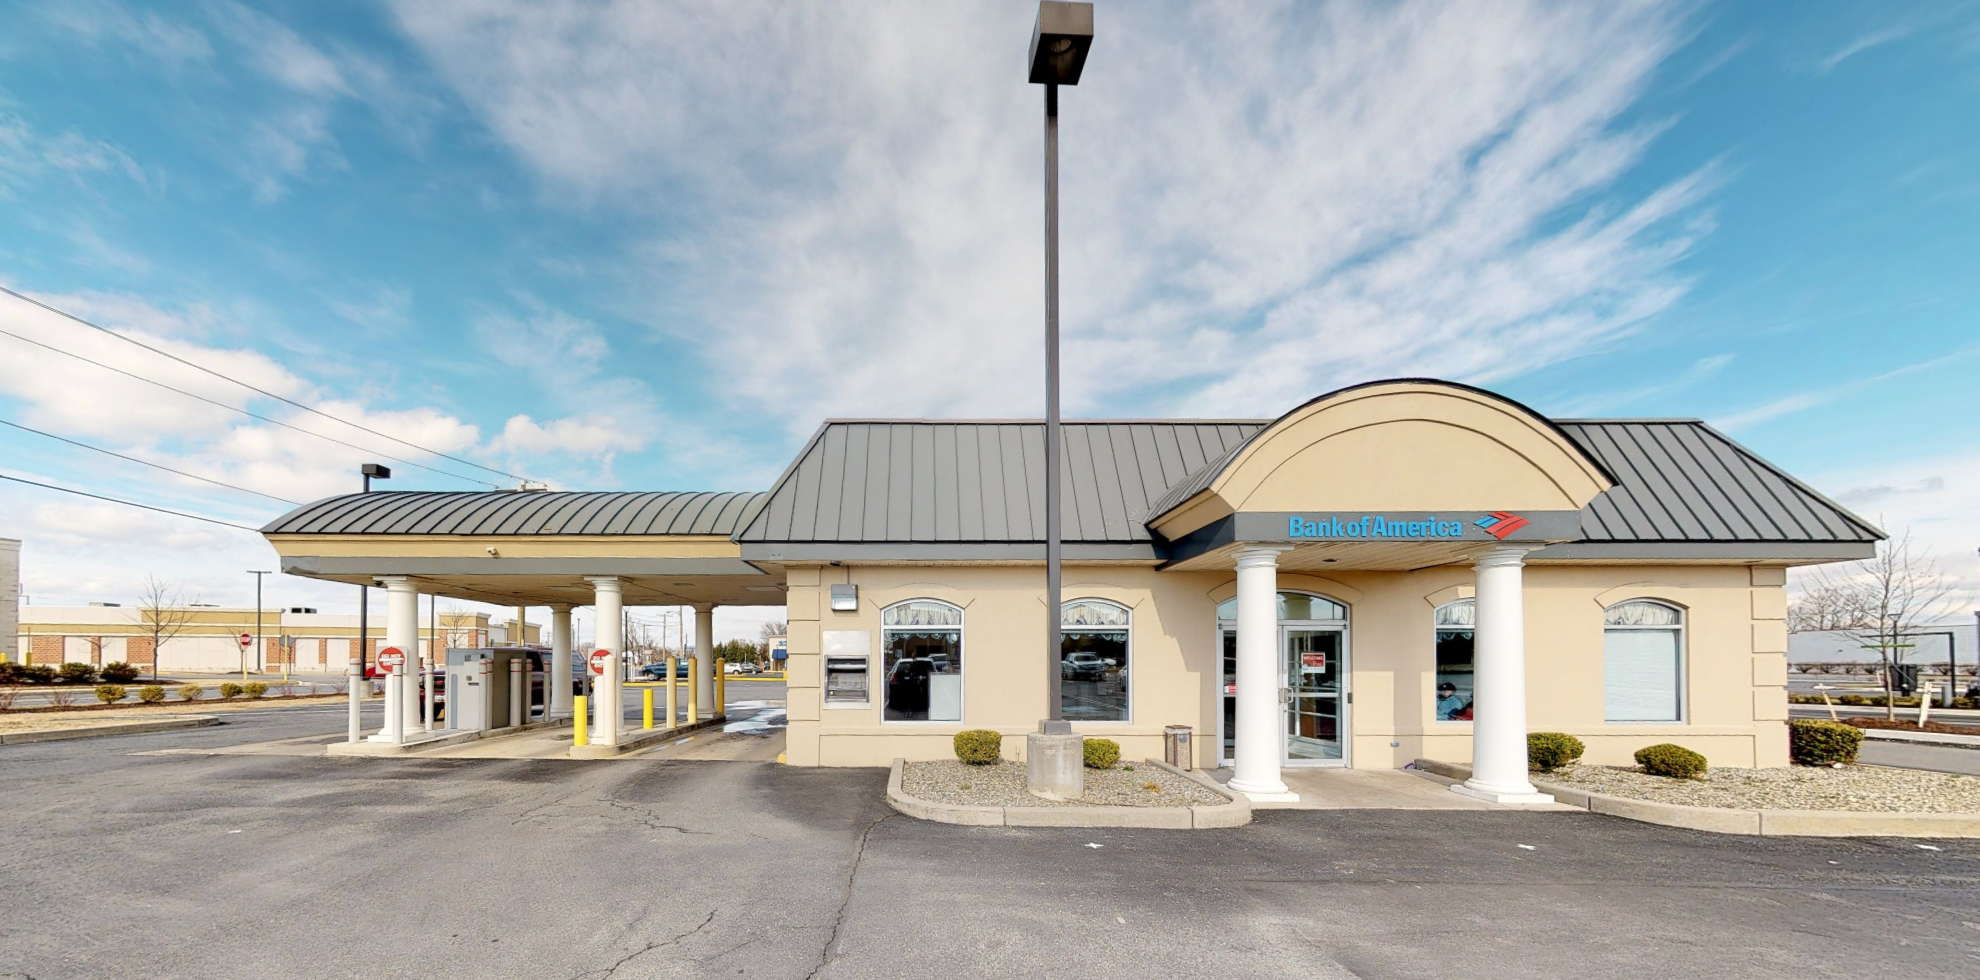 Bank of America financial center with drive-thru ATM | 700 Sunburst Hwy, Cambridge, MD 21613